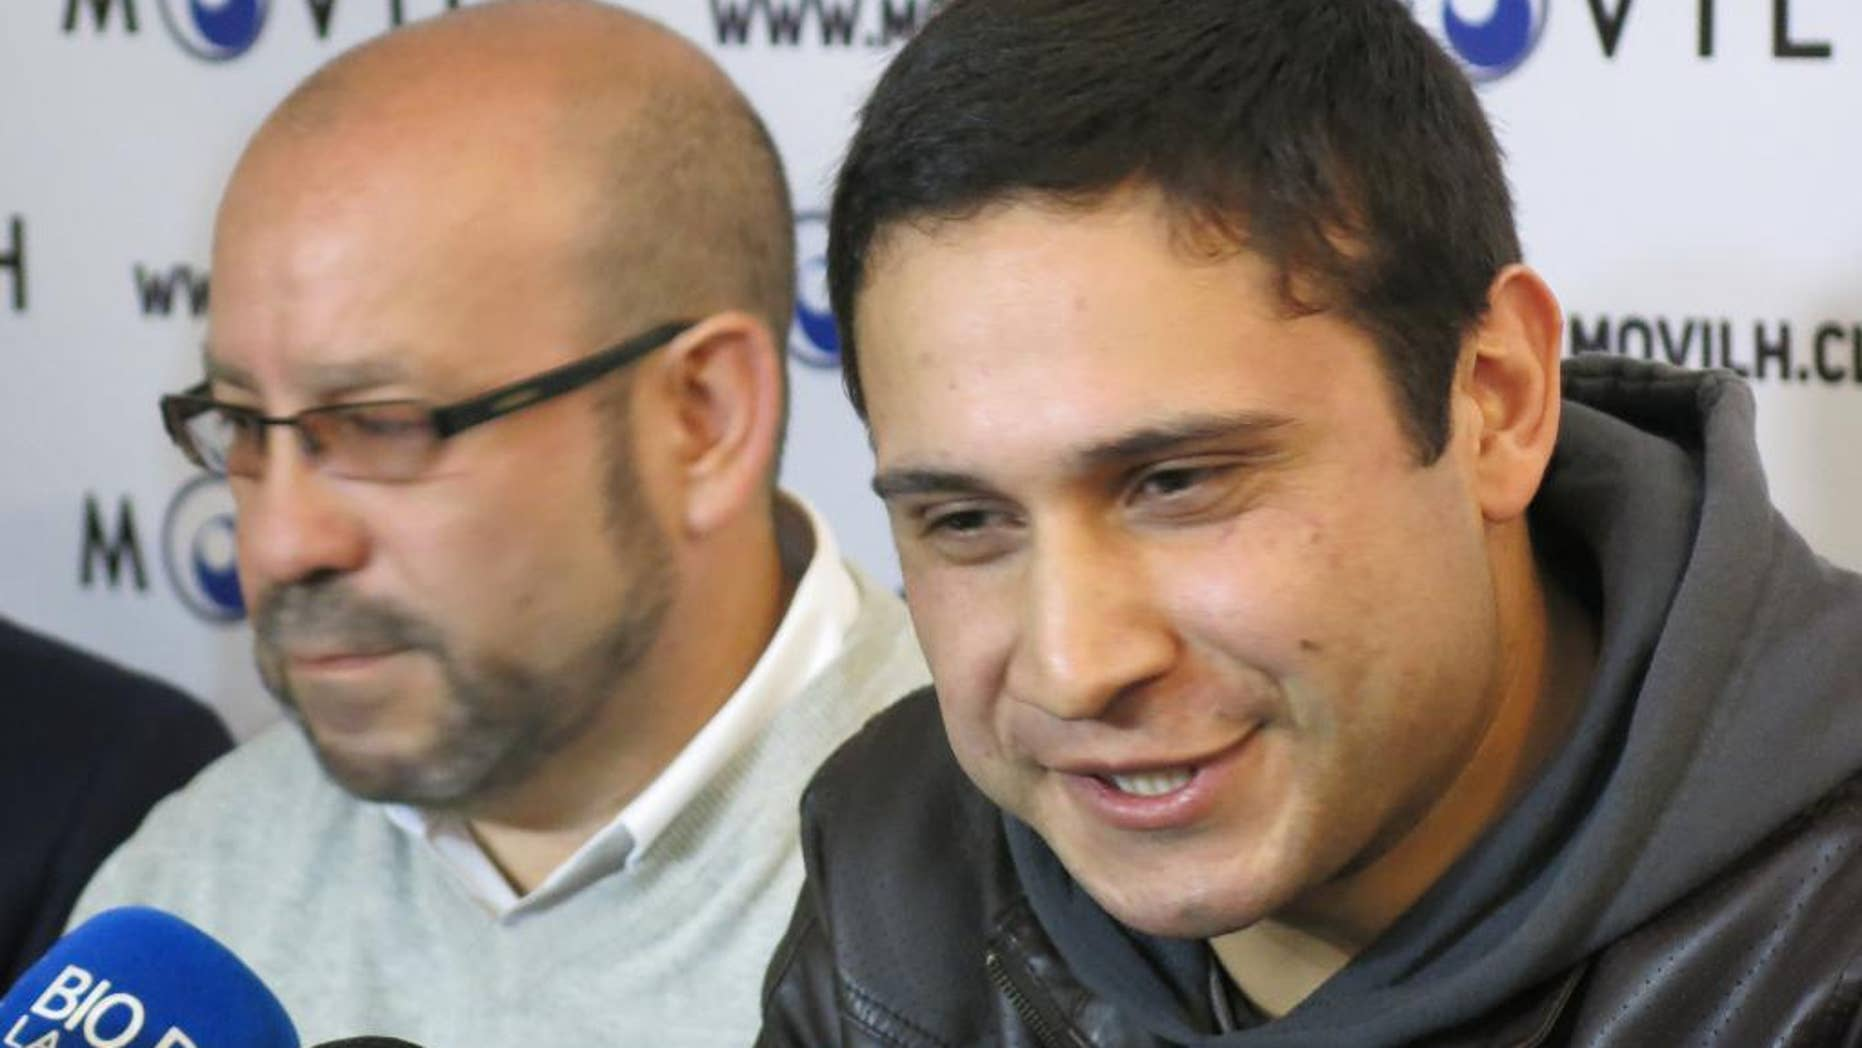 ADDS MONTH - Mauricio Ruiz, 24, sailor of the Chilean Navy, right, comes out publicly as gay during a press conference in Santiago, Chile, Wednesday Aug. 27, 2014. Ruiz who was accompanied by Rolando Jimenez, left, president of the Homosexual Liberation and Integration Movement, is the first member of the Chilean armed forces ever to come out publicly as gay with the approval of the High Command of the Chilean navy. (AP Photo/Eva Vergara)